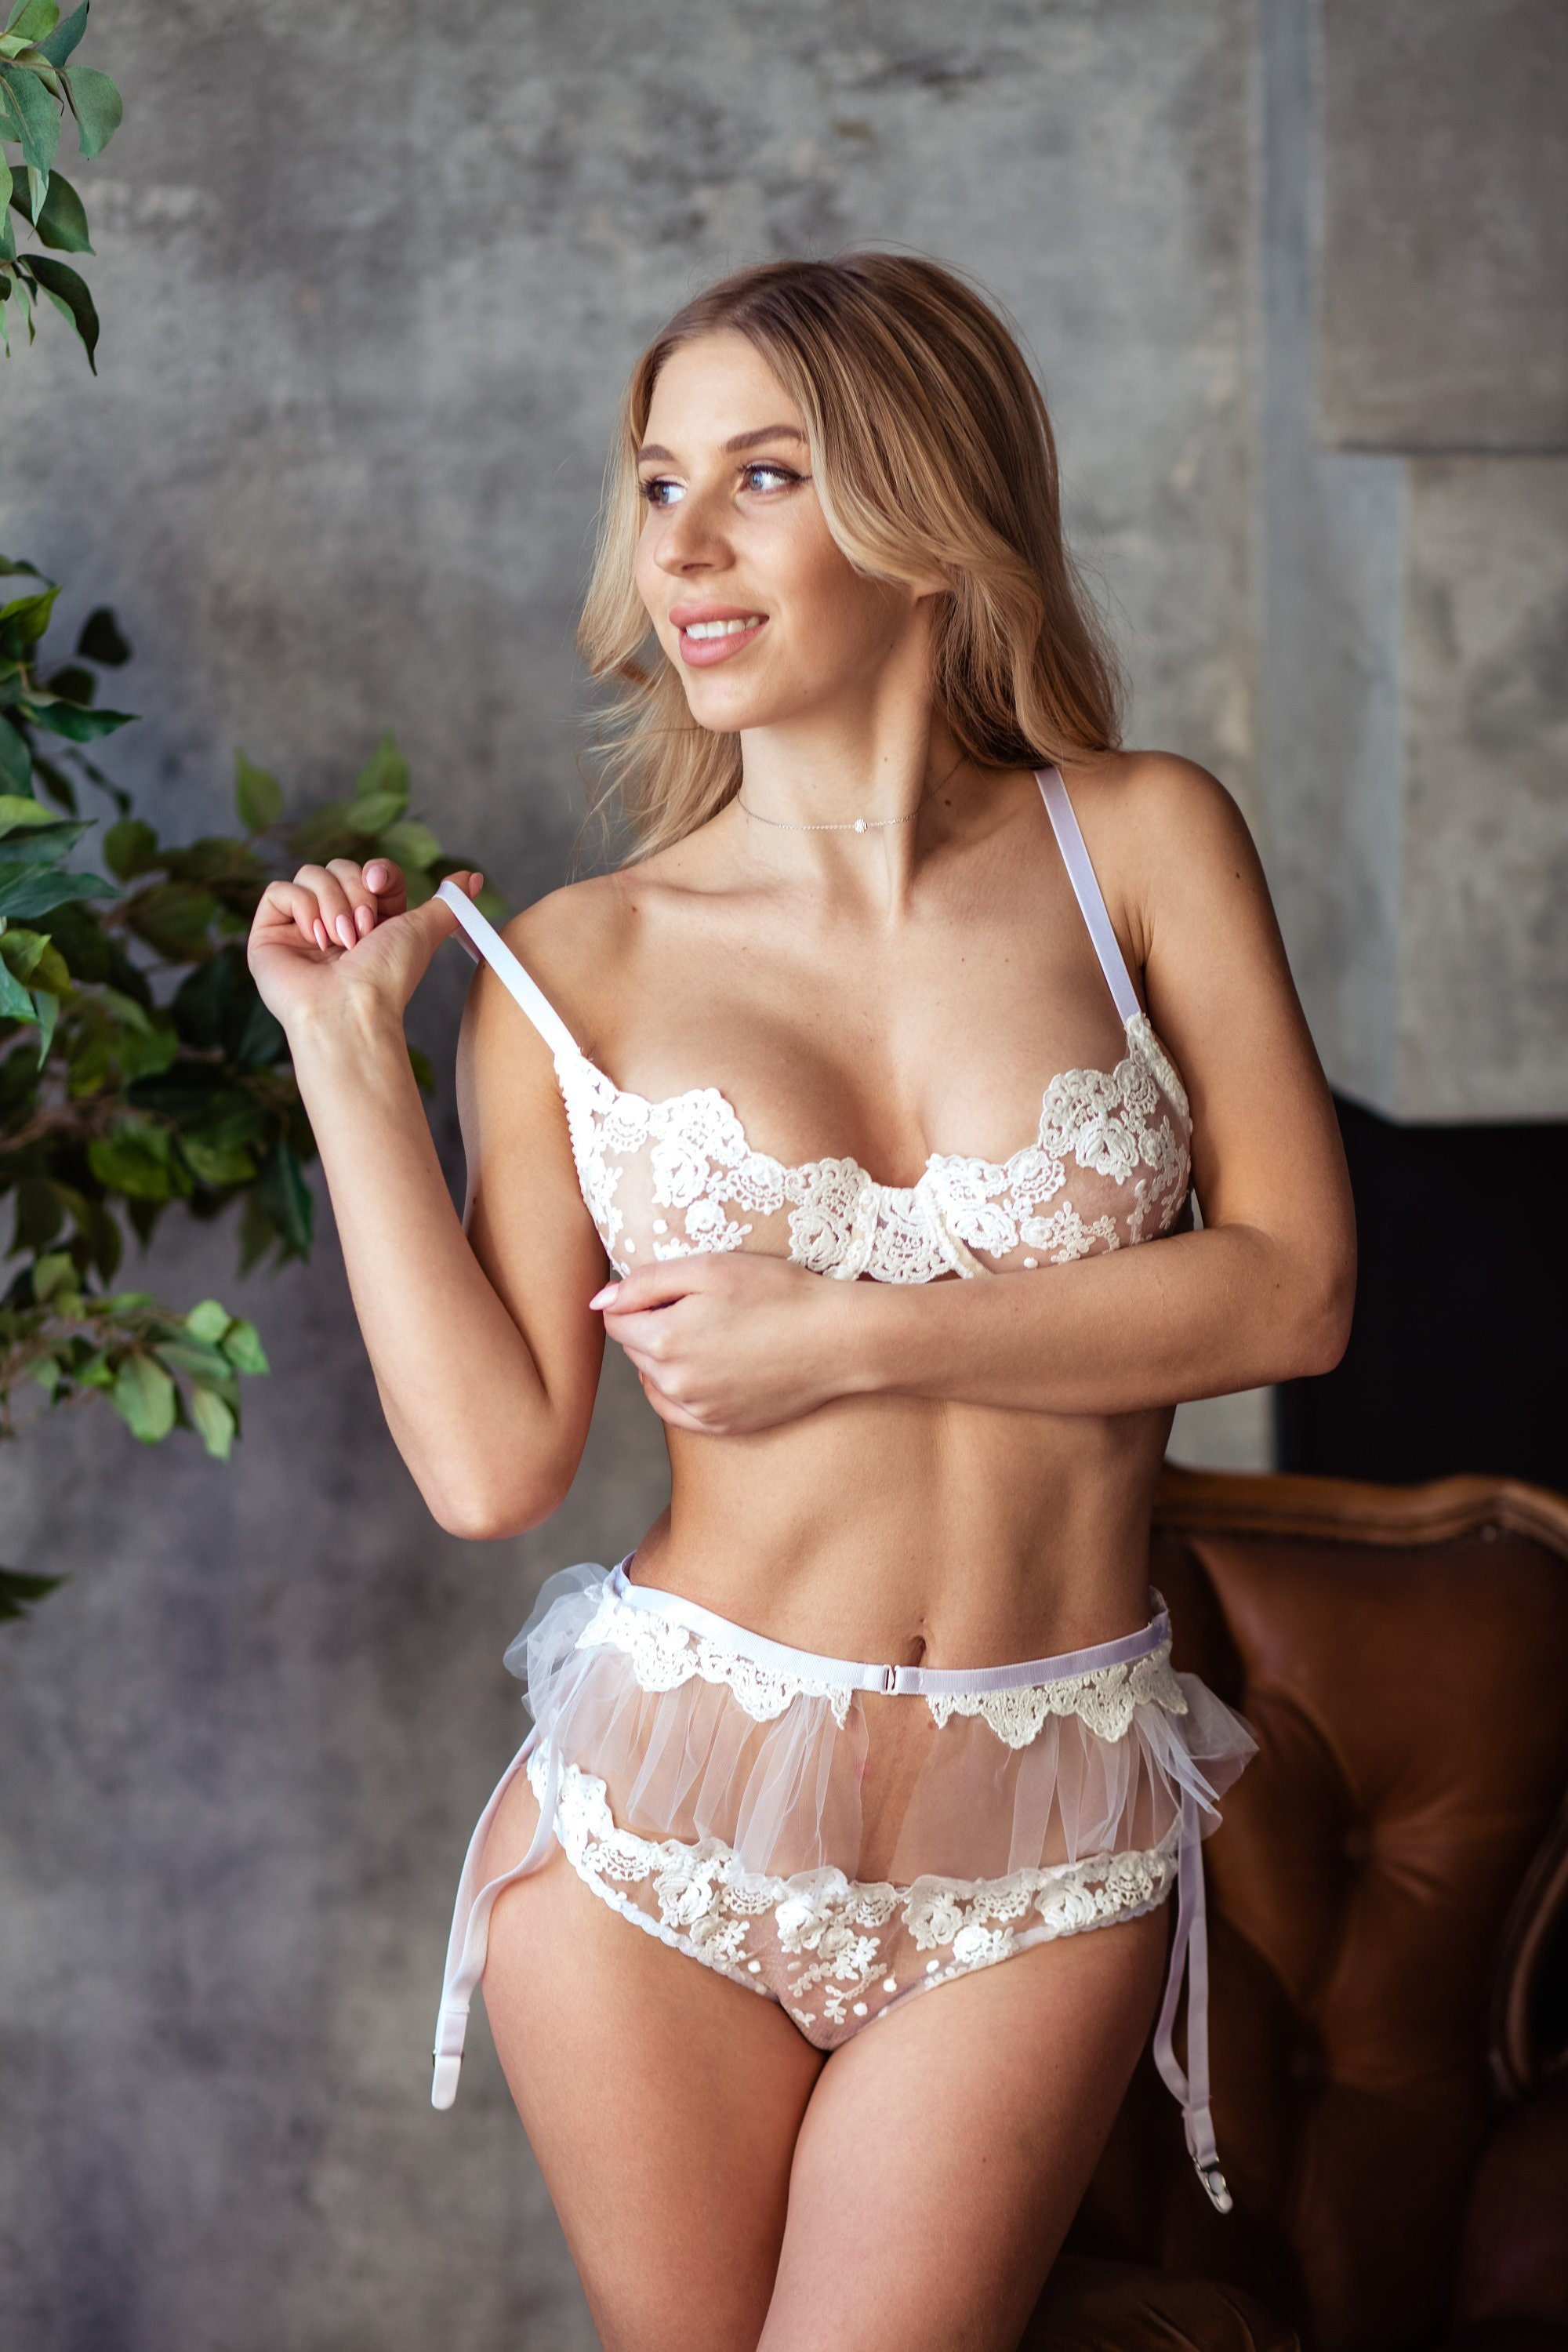 ce76890d2 50. White Lingerie Set Women Lingerie See Through Lingerie Mesh ...